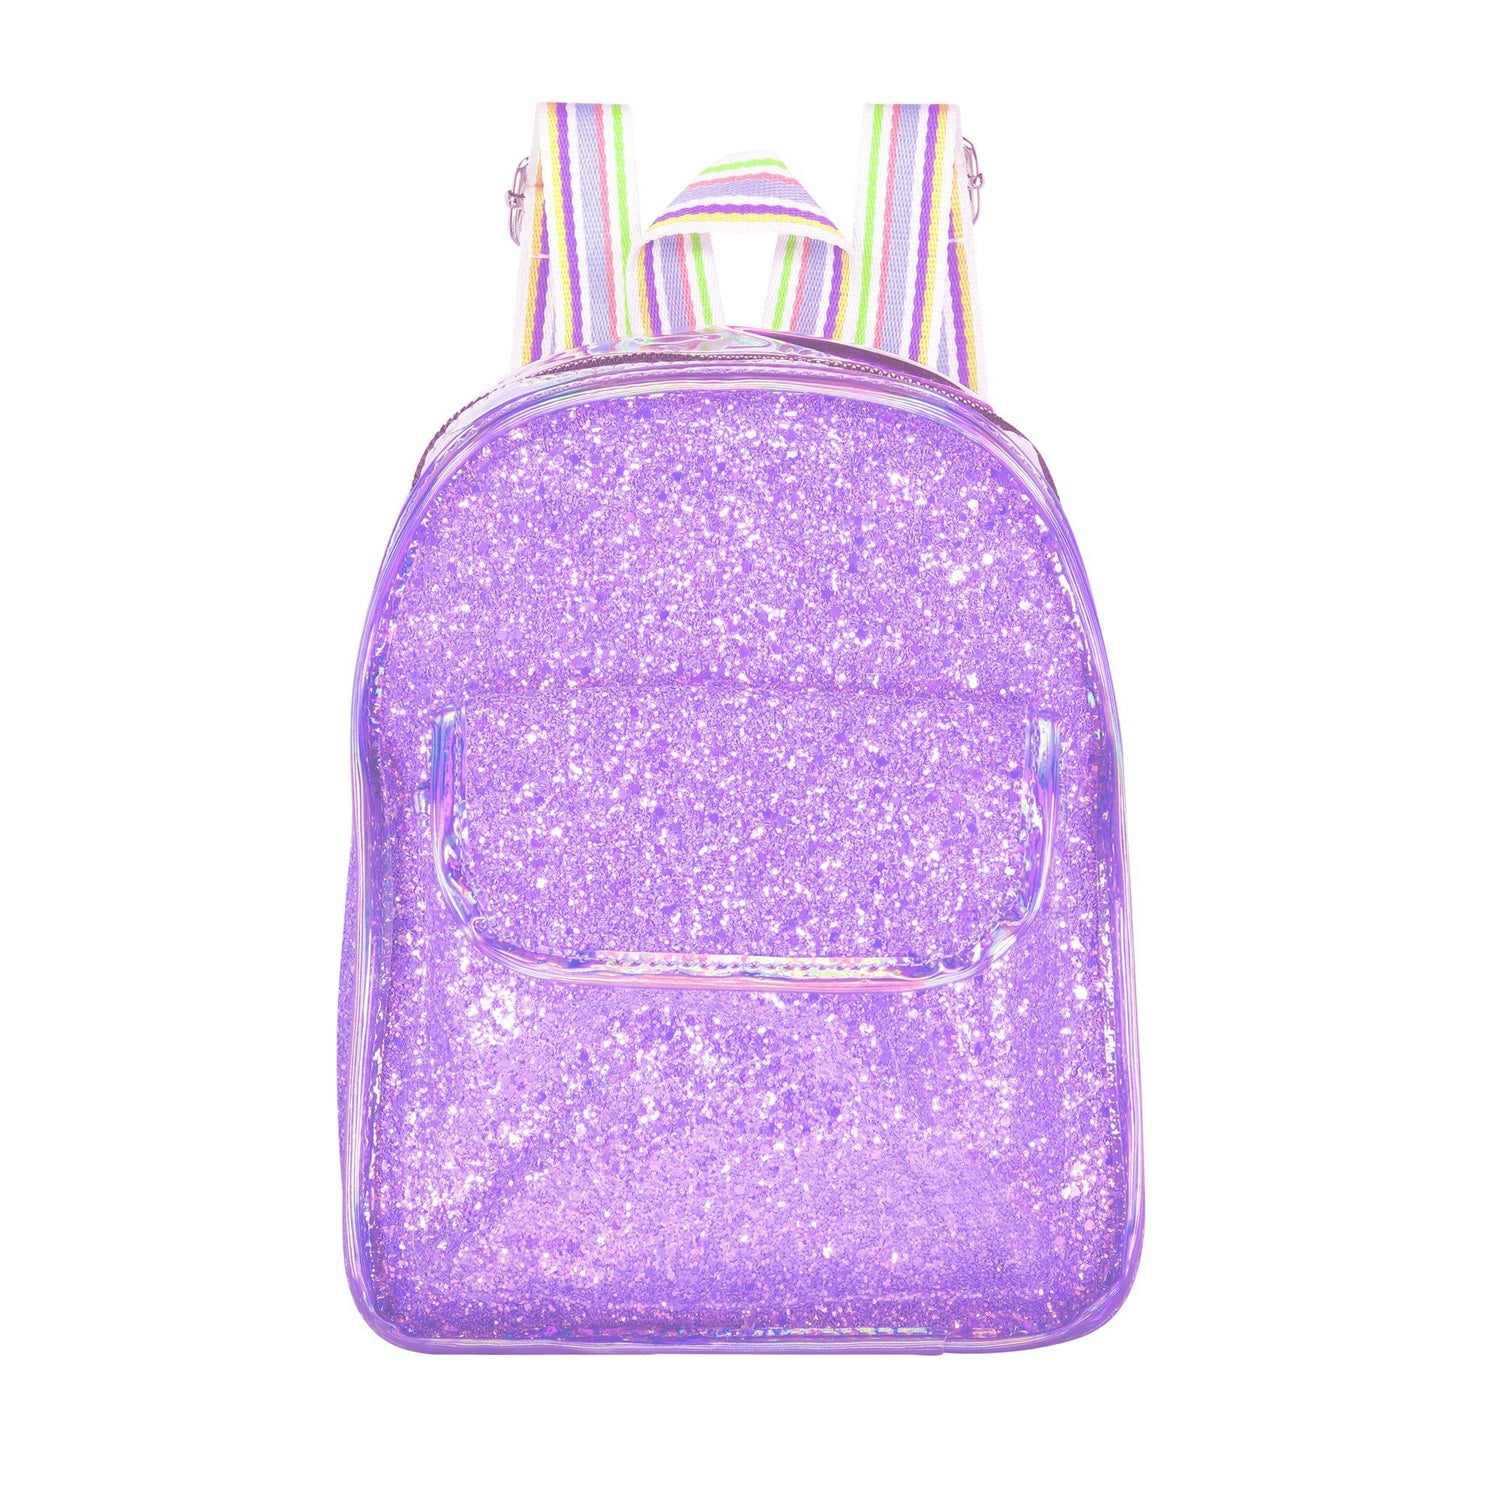 Glitter Mini Bag Bags Maniere Accessories Lavender